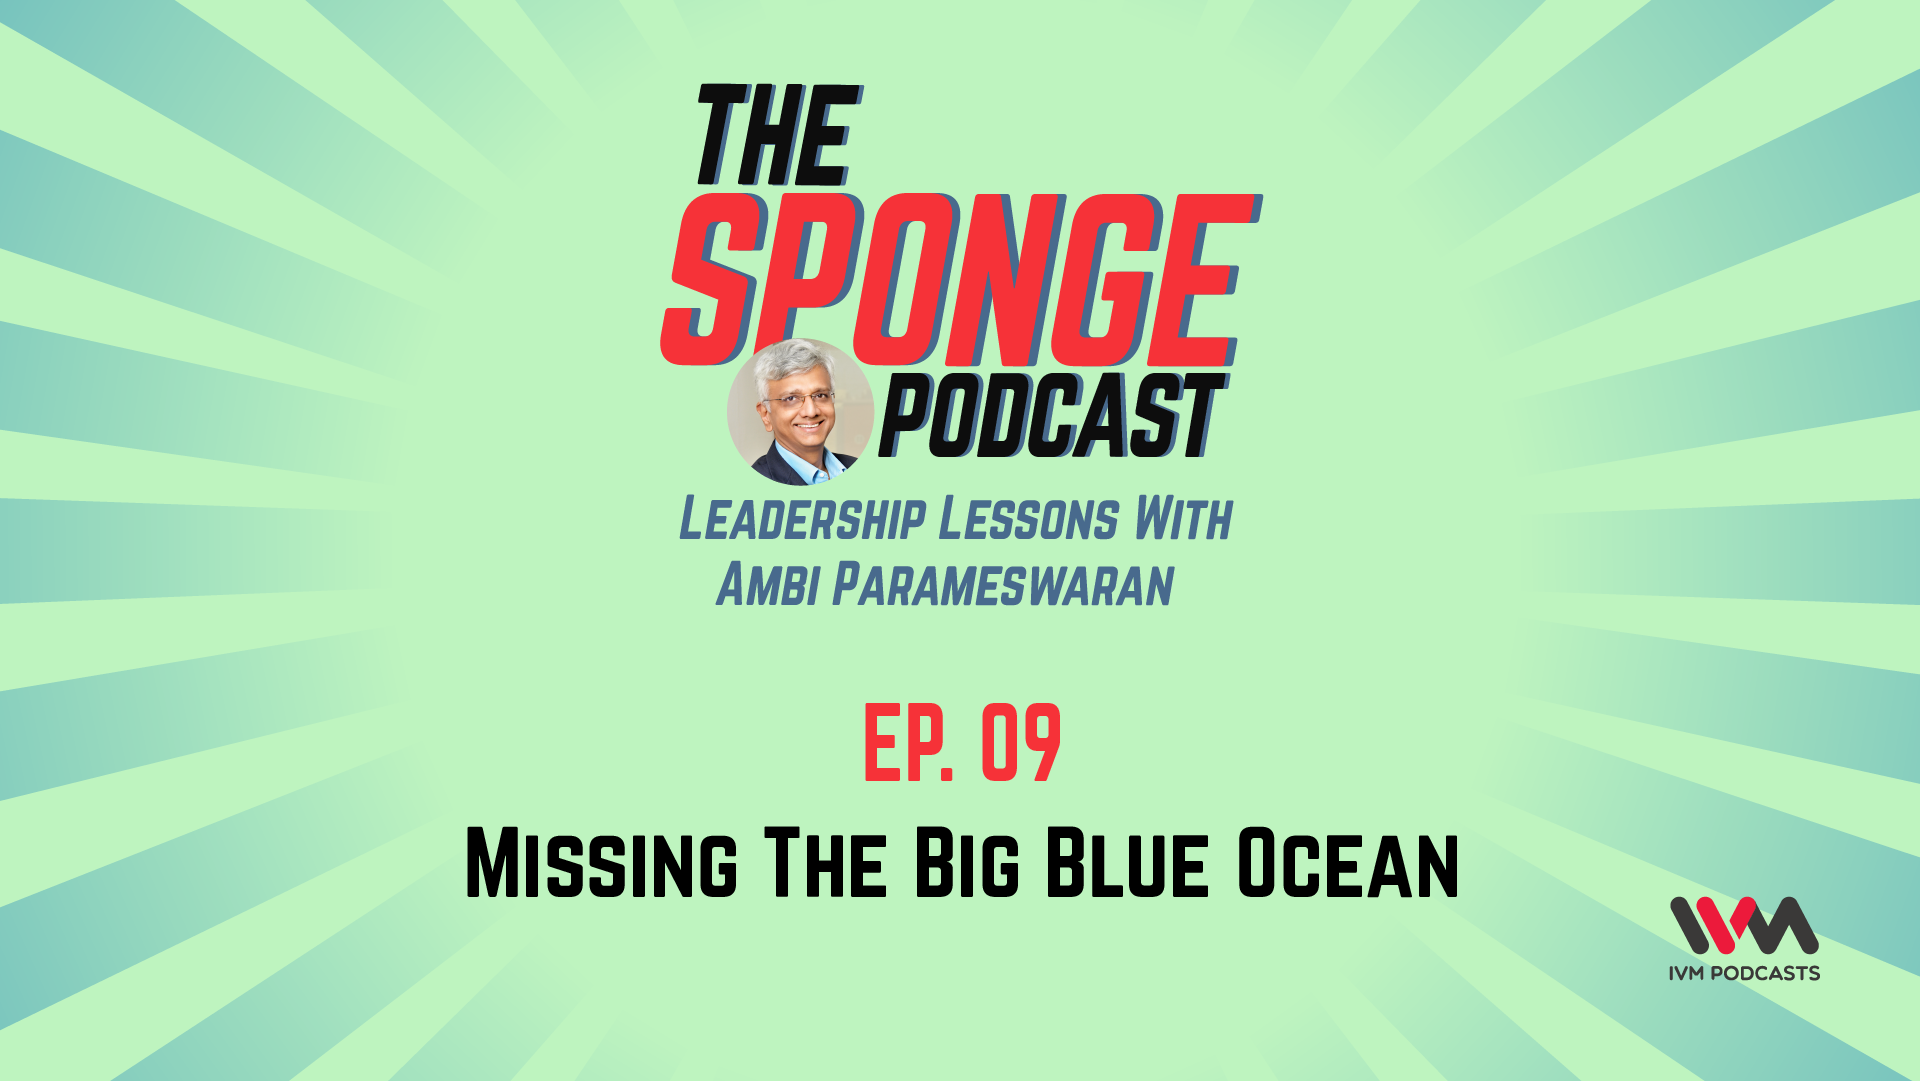 TheSpongePodcastEpisode09.png